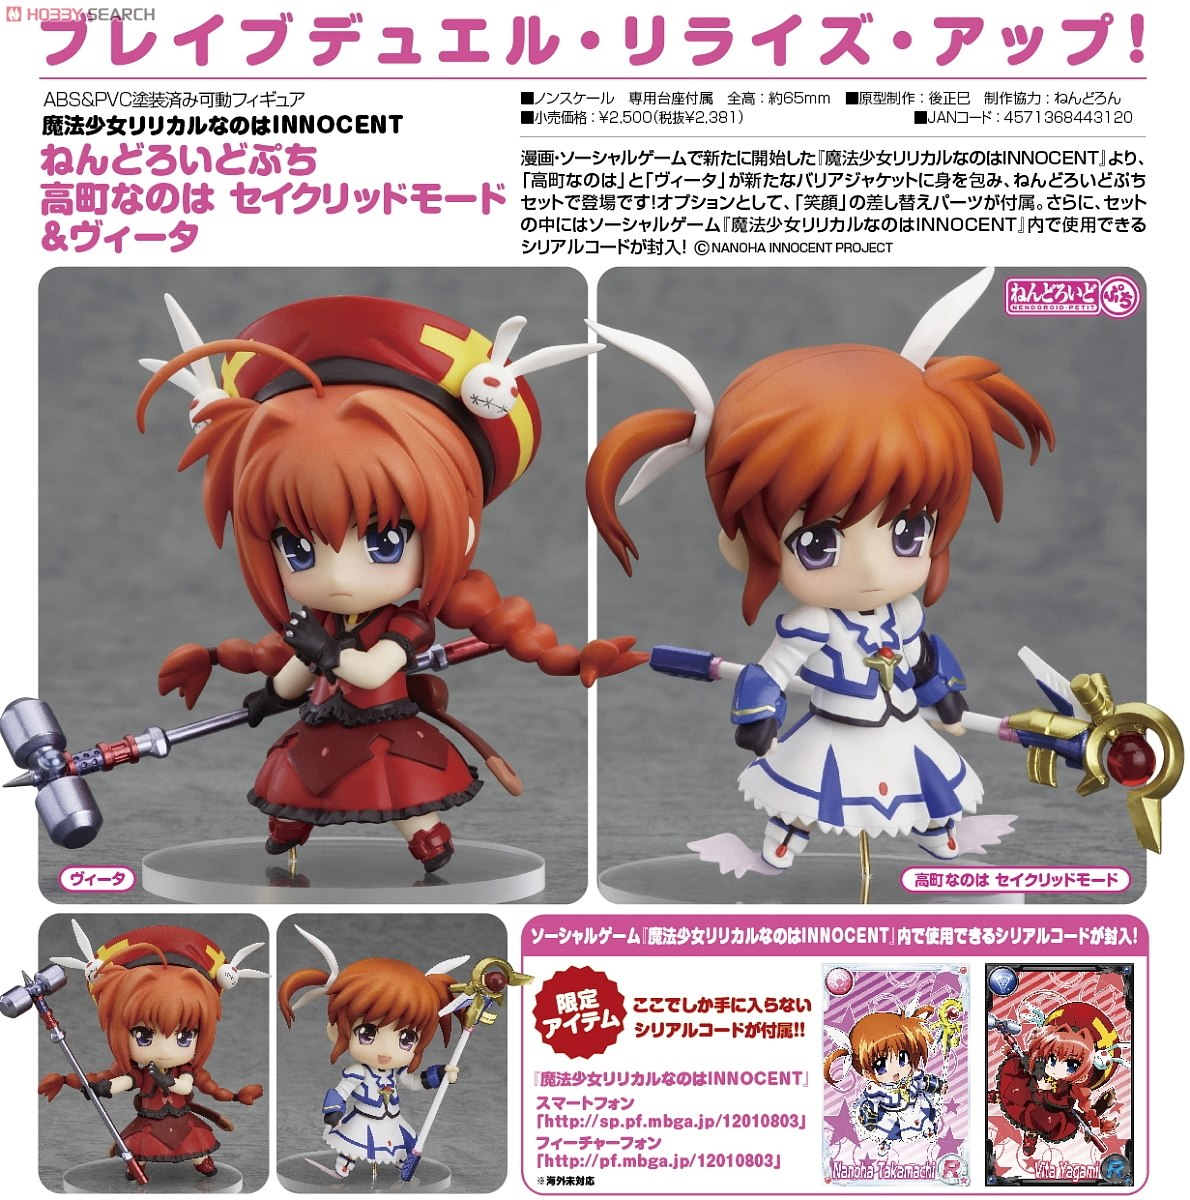 Nendoroid Puchi Takamachi Nanoha Sacred Mode & Vita [Magical Girl Lyrical Nanoha INNOCENT]